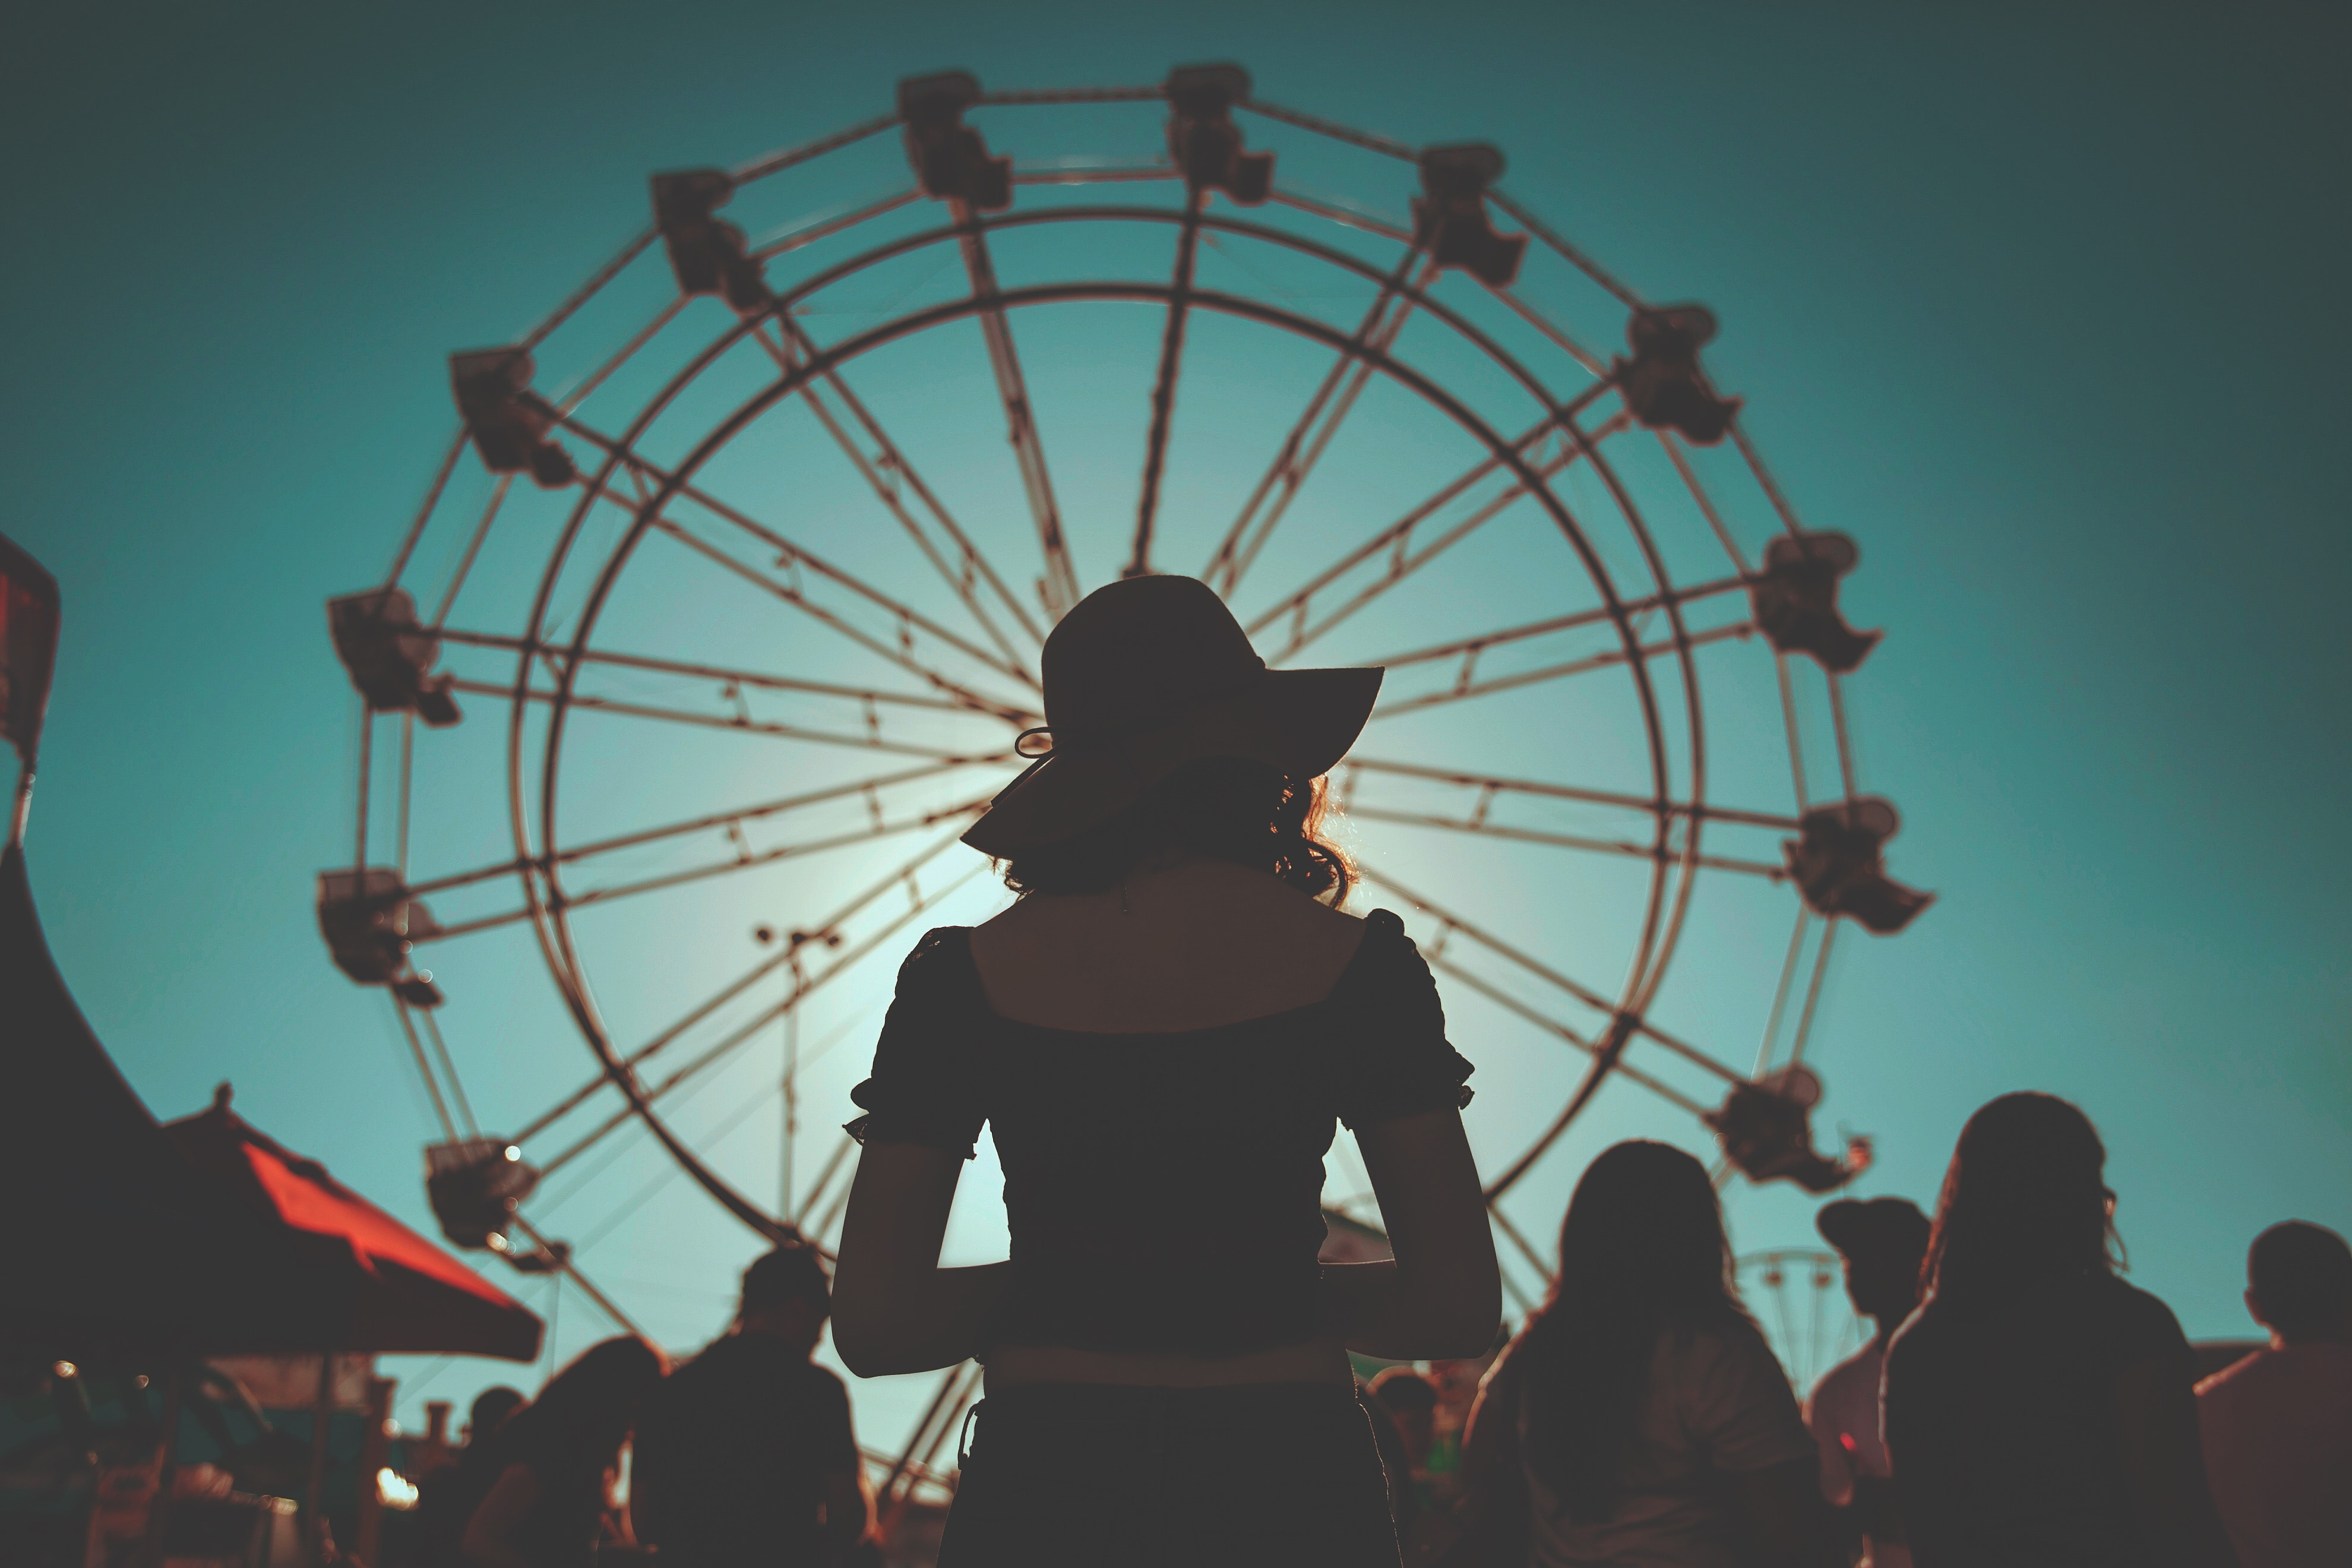 woman standing in front of ferris wheels surrounded with people